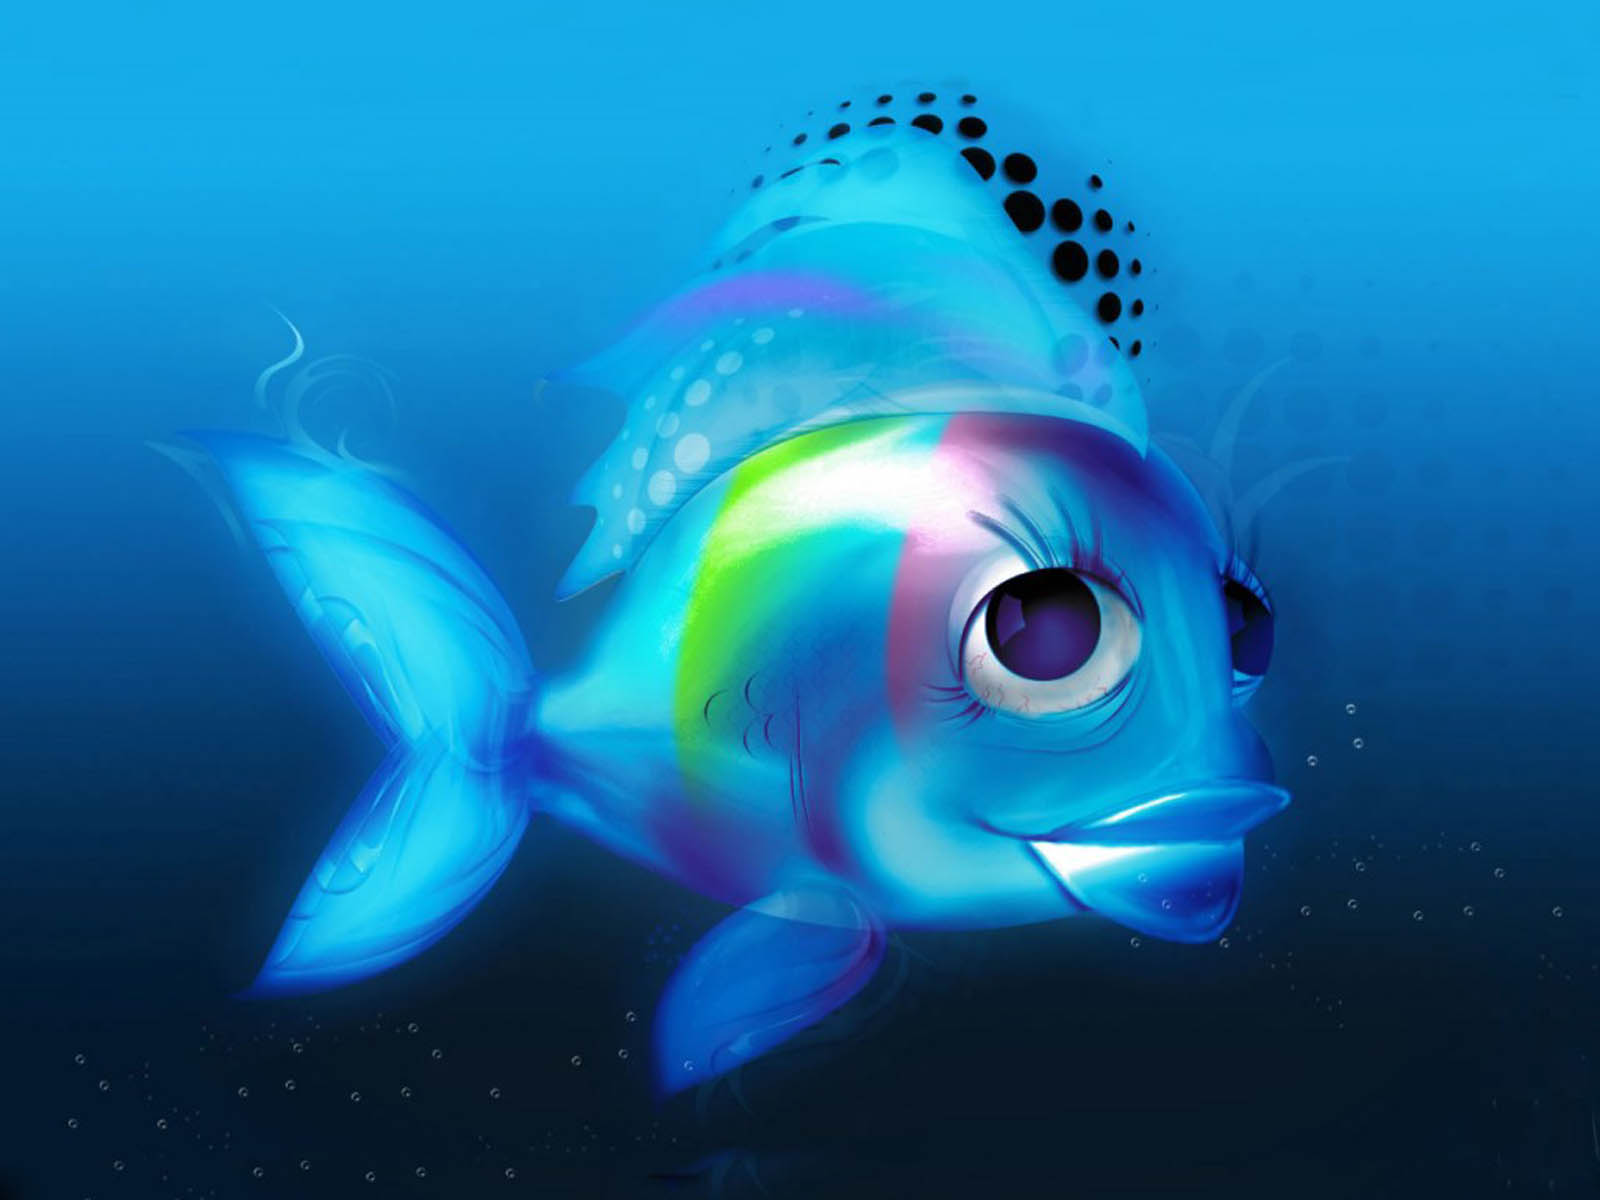 blue fish wallpaper backgrounds - photo #35